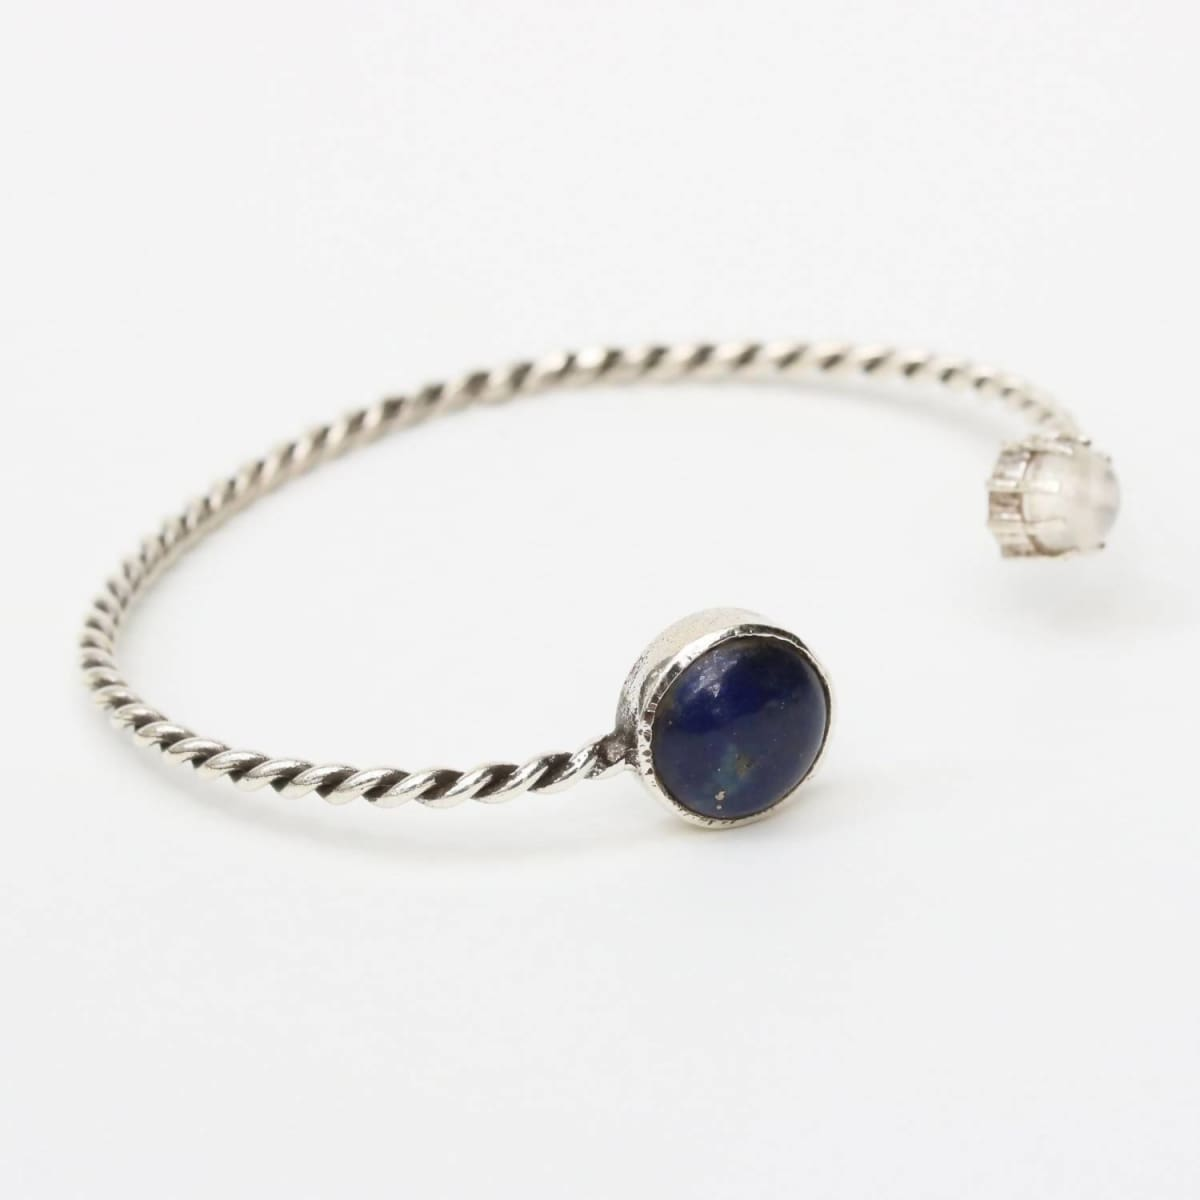 Bracelets Lapis lazuli and moonstone gemstones cuff bracelet with sterling silver twist band design/TP